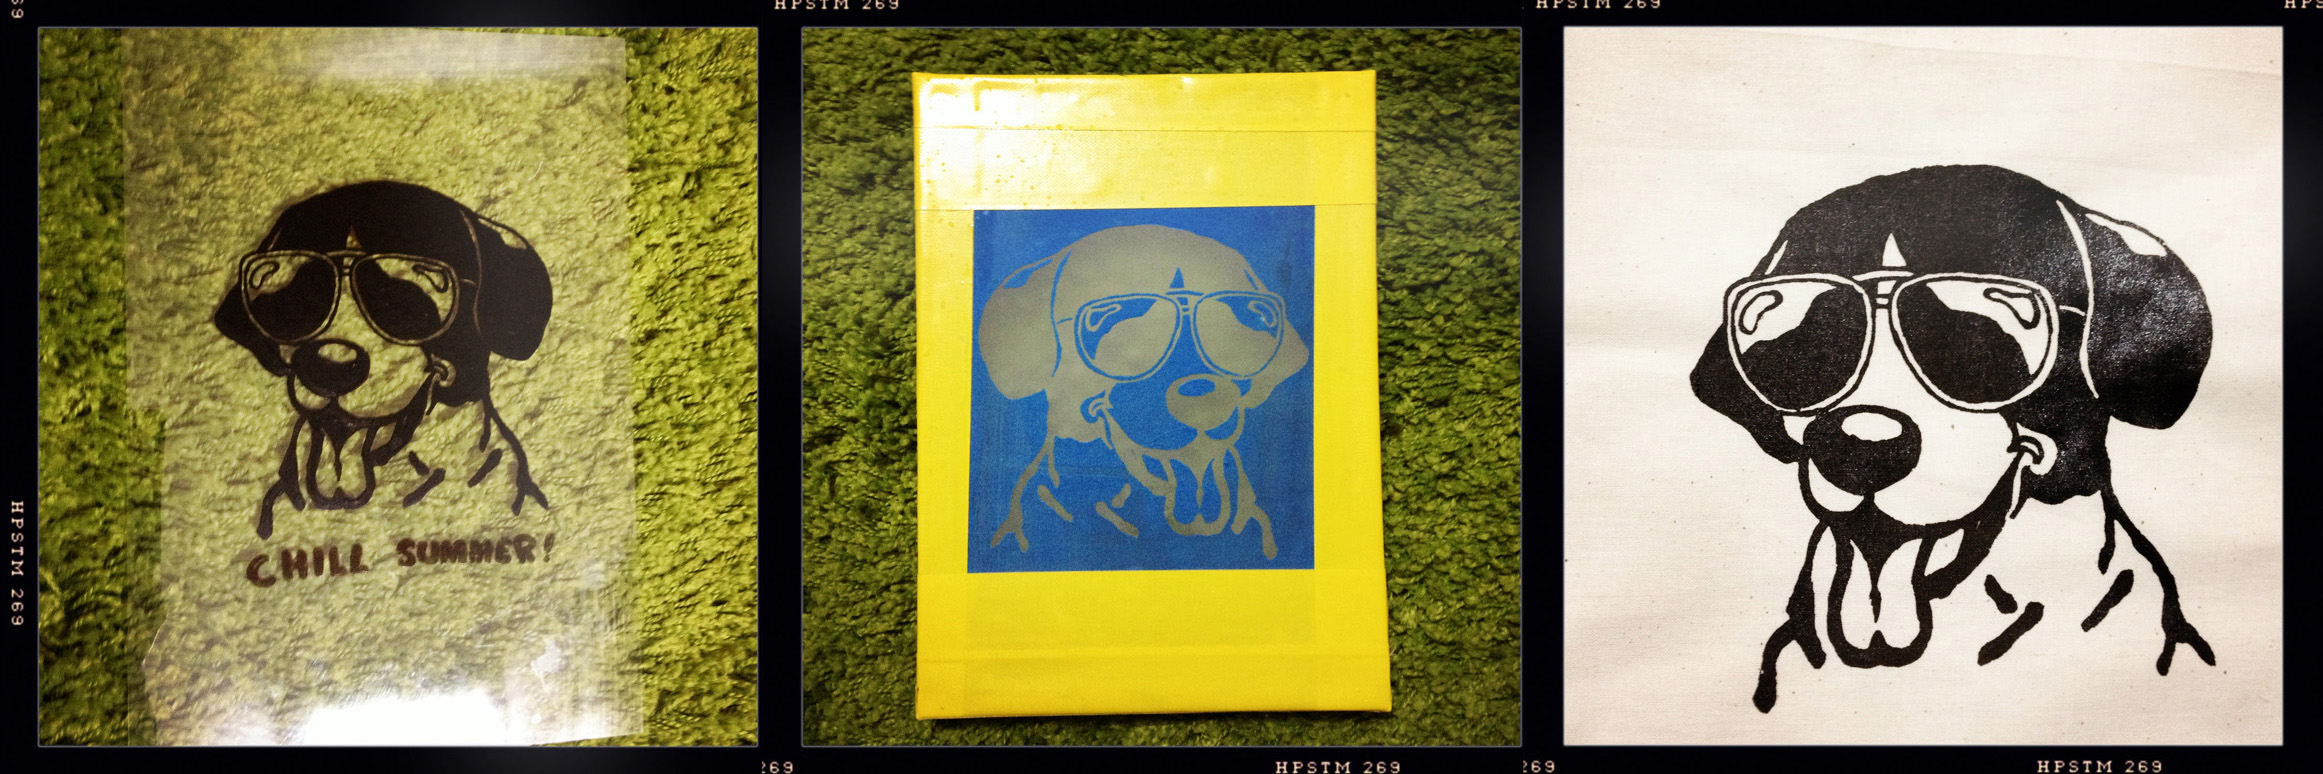 *FULL* 2013 4/27 Advocacy Through Art Series: Inspired by (love) for our Canine Friends